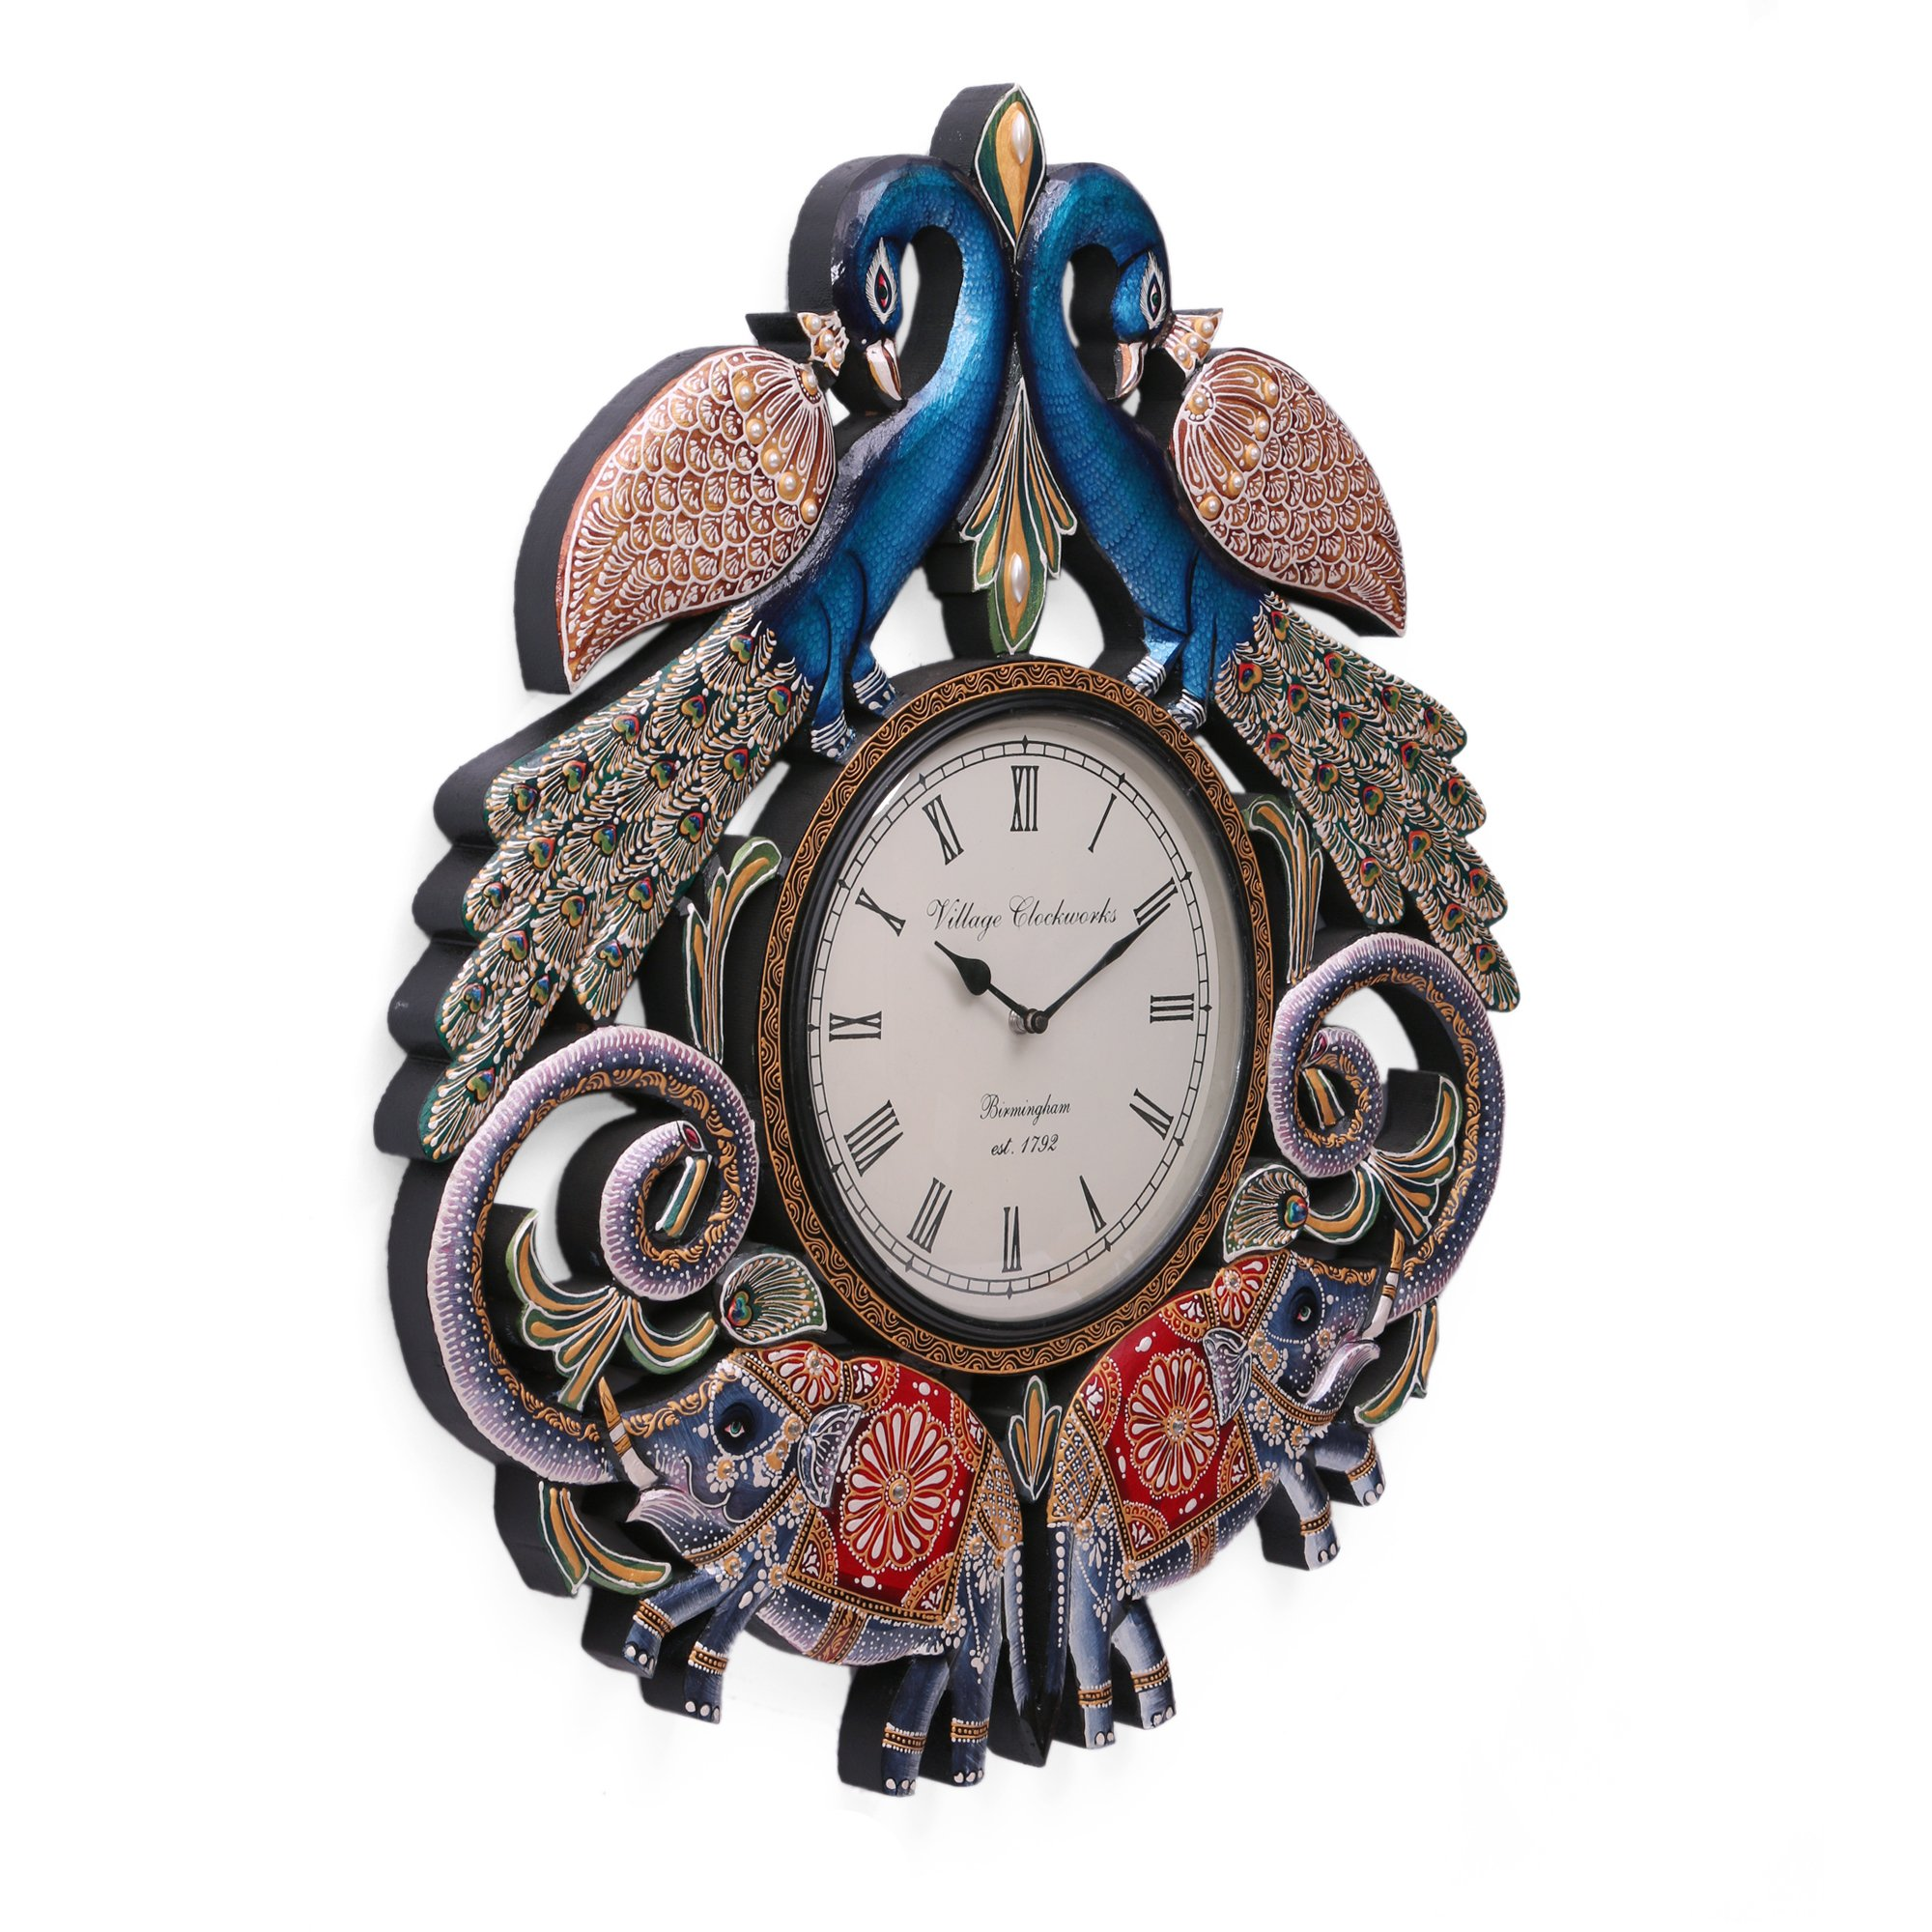 CraftVatika Handmade Wall Clock - 2.1 FT Large Peacock Elephant Hand Carved Painted Wooden Clock Wall Sculpture by CraftVatika (Image #3)